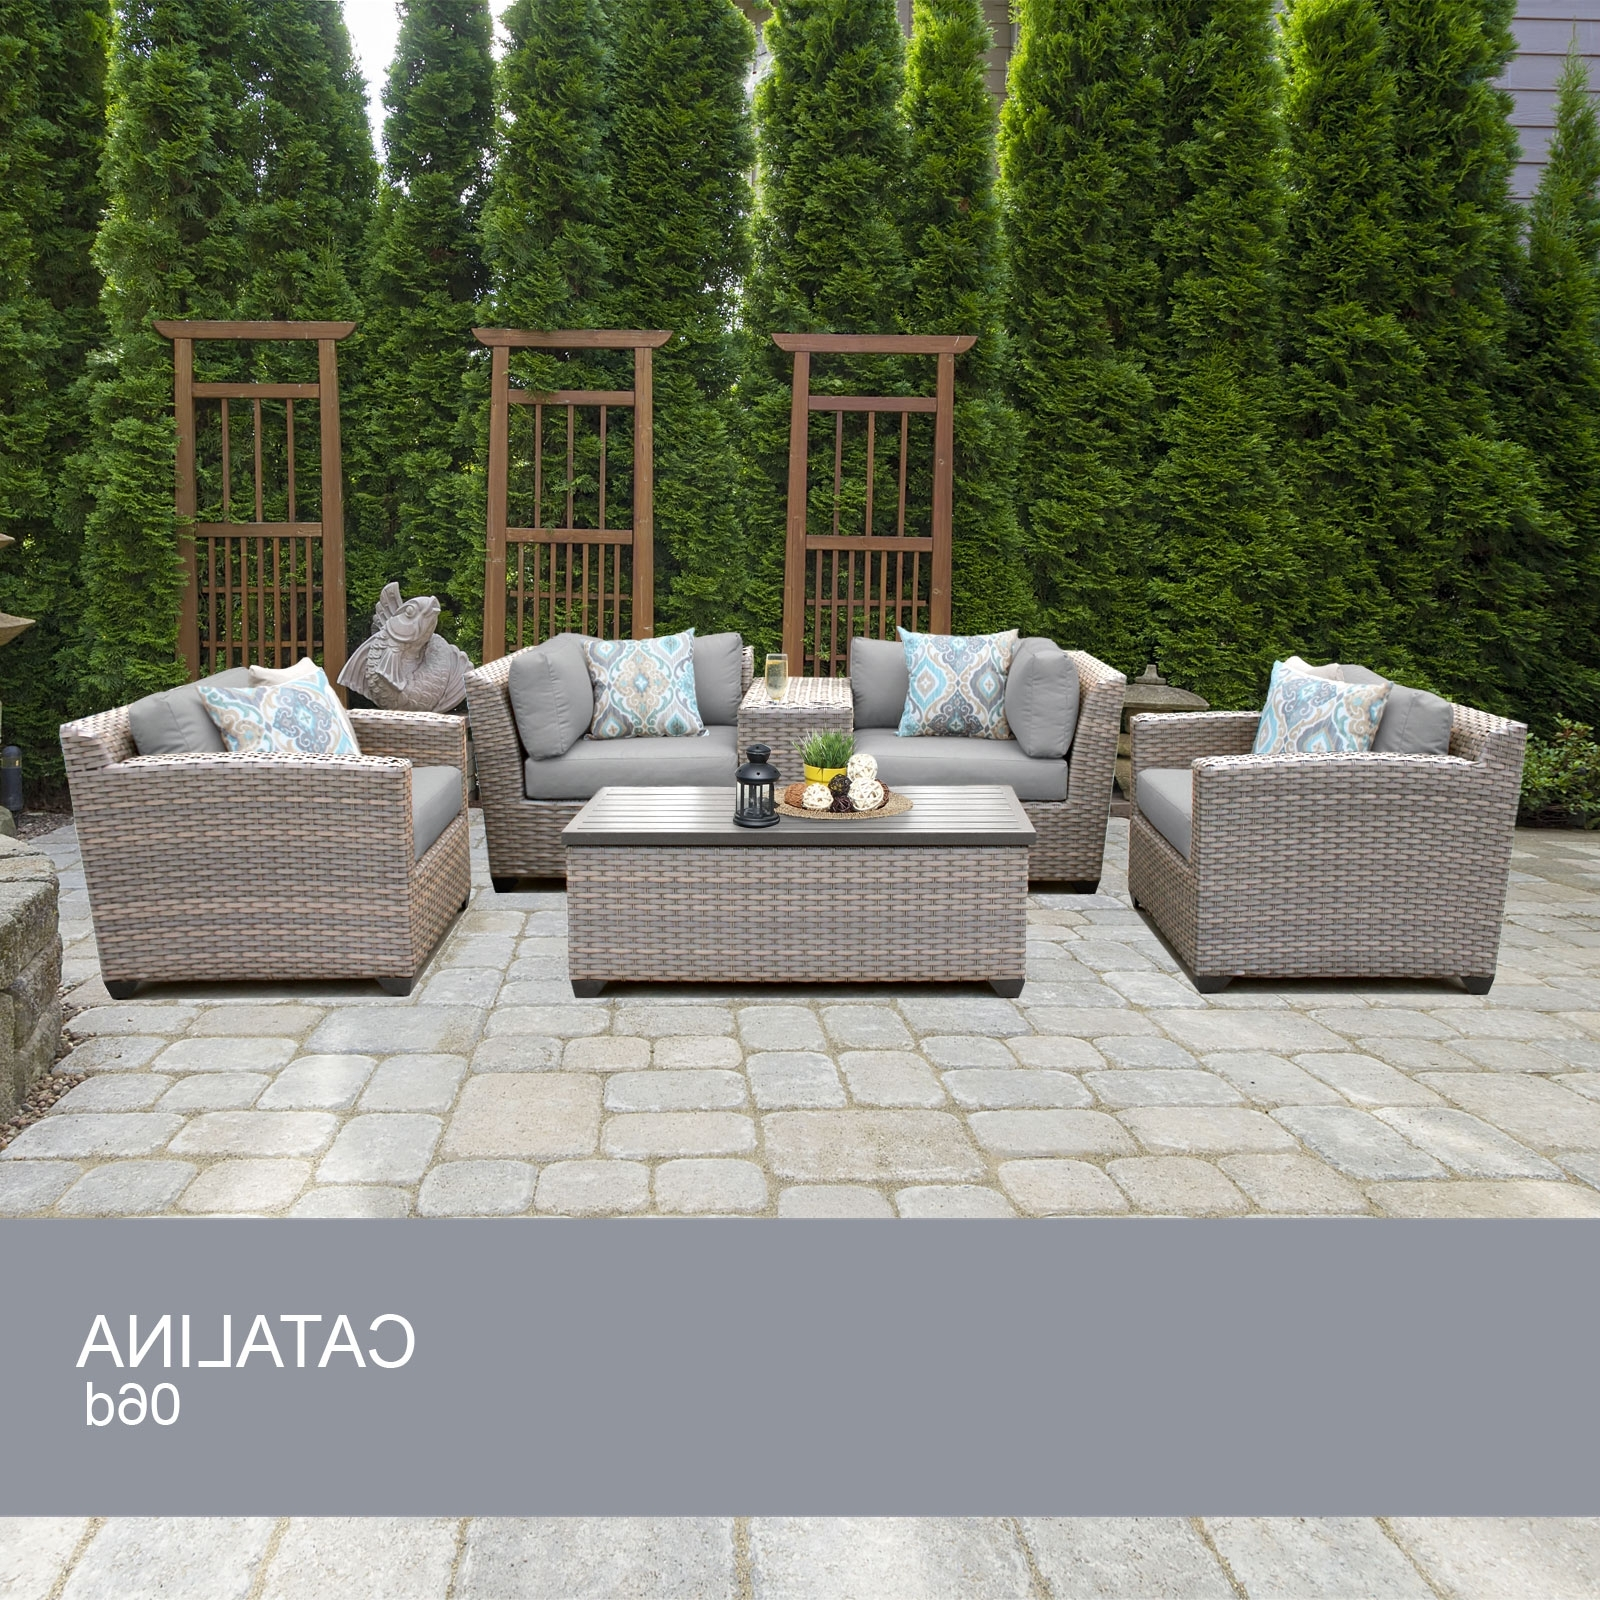 Trendy Ebay Patio Conversation Sets For Resin Wicker Patio Furniture – Airavata (View 9 of 15)